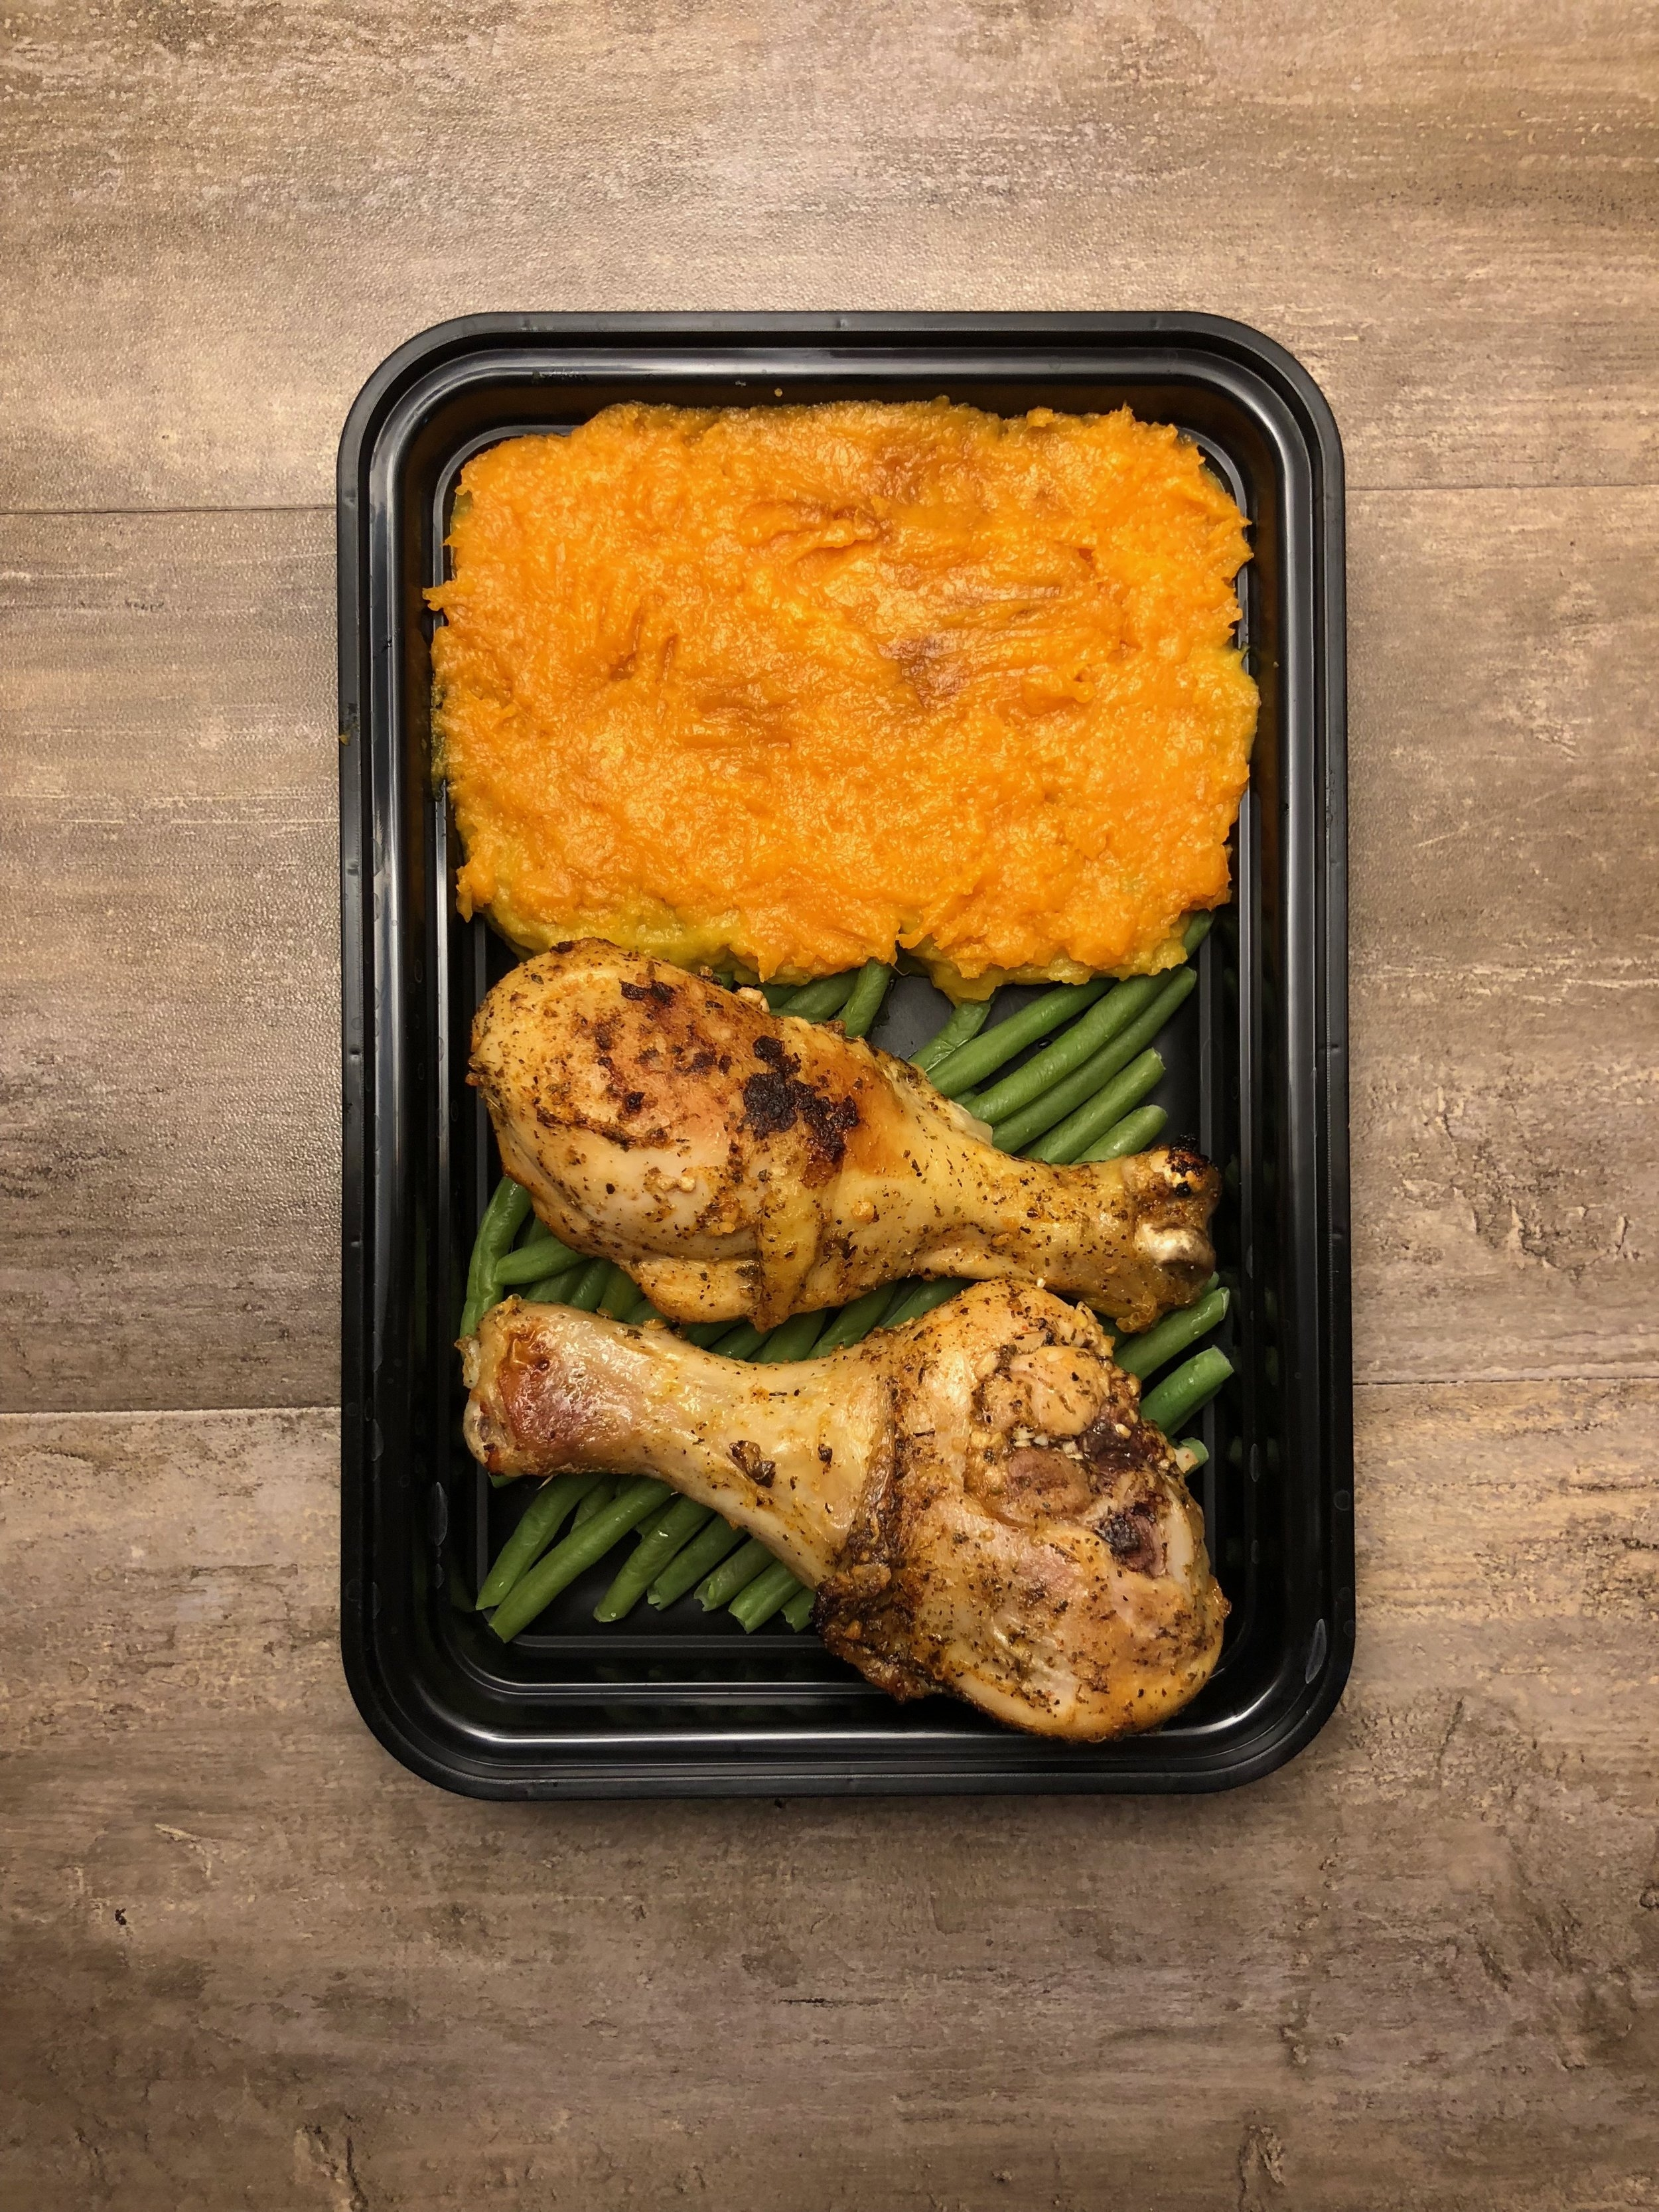 Roasted Chicken Legs with Mashed Sweet Potatoes Meal Prep